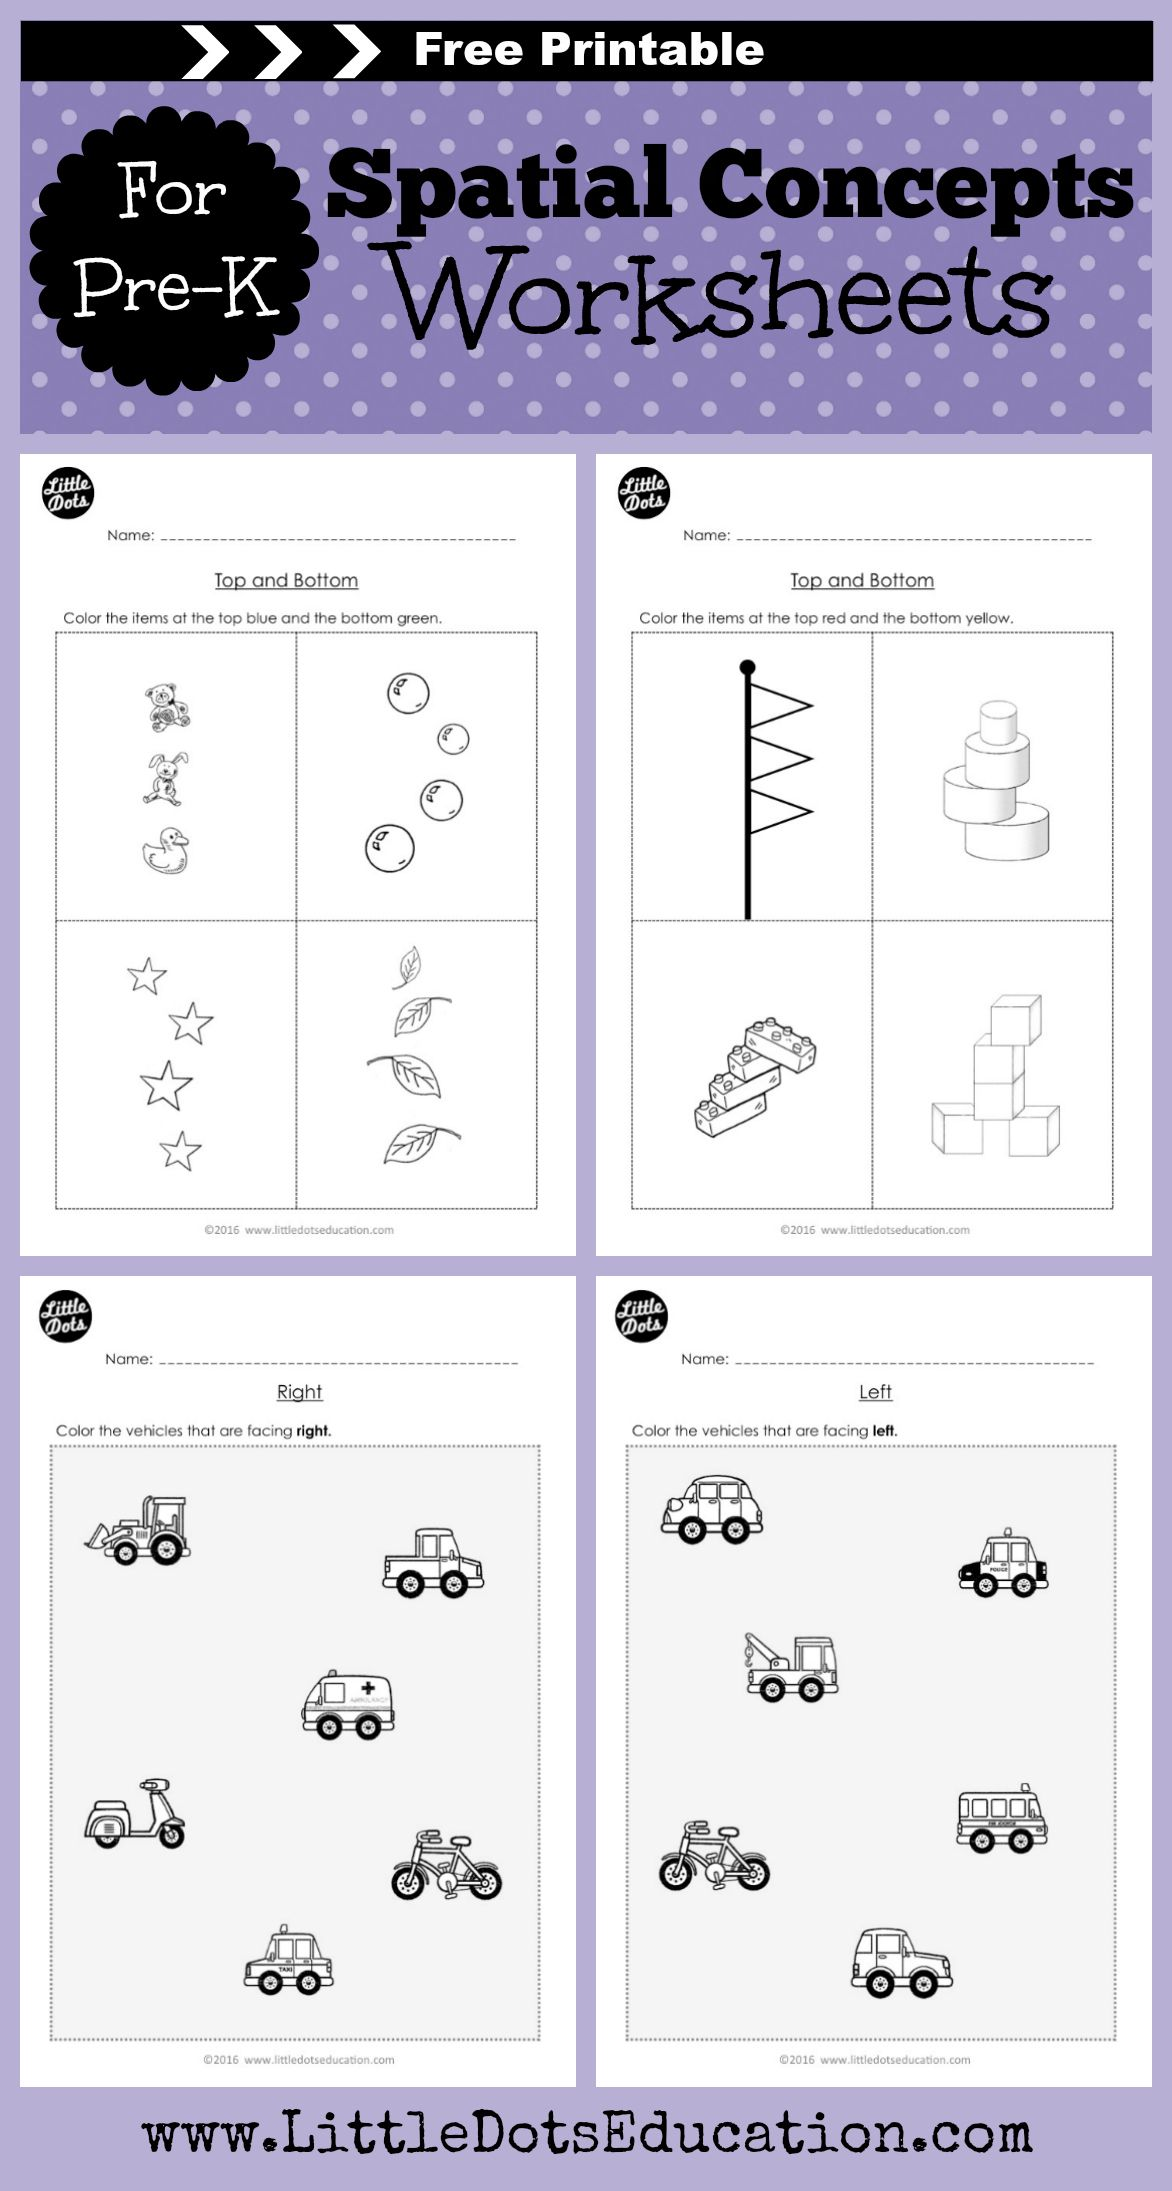 Spatial Concepts Next Worksheet